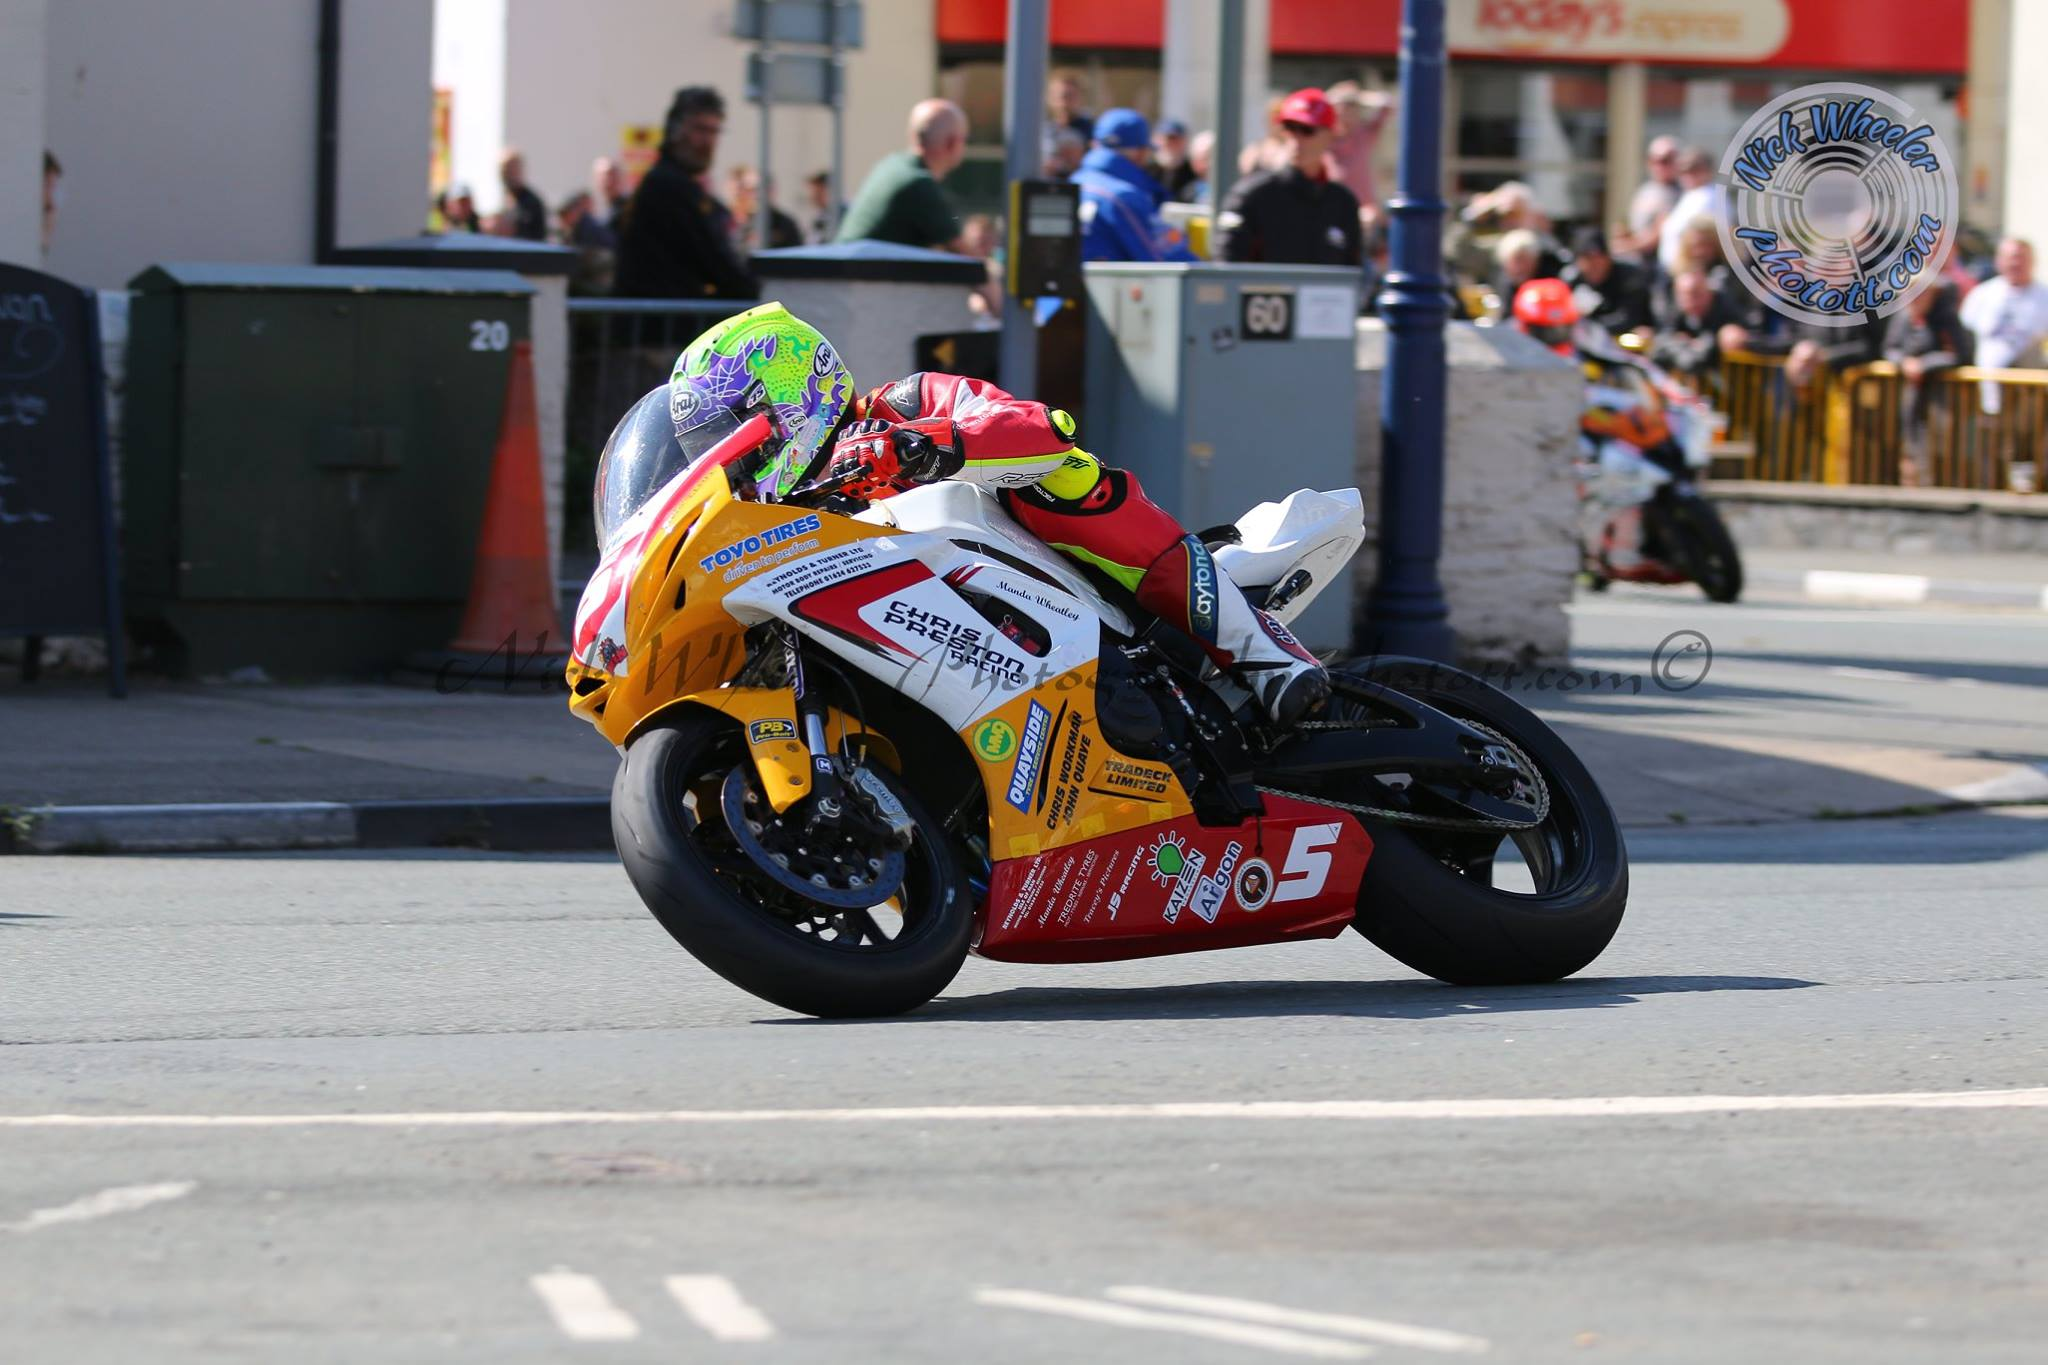 Magic Monday In Prospect At Festival Of Motorcycling